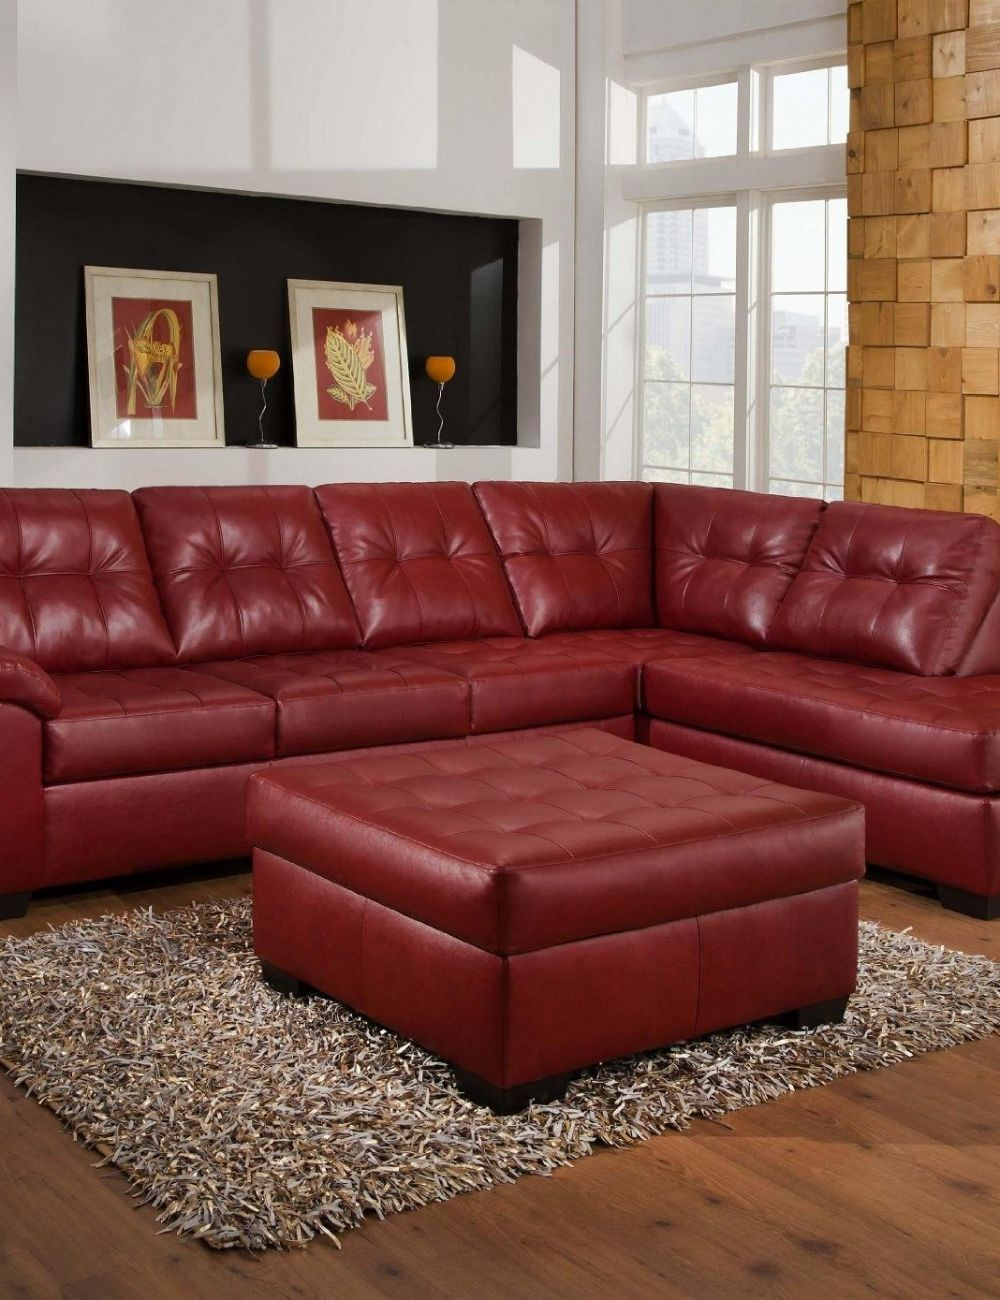 Red leather sectional sofa with ottoman | Houston Apartment ...